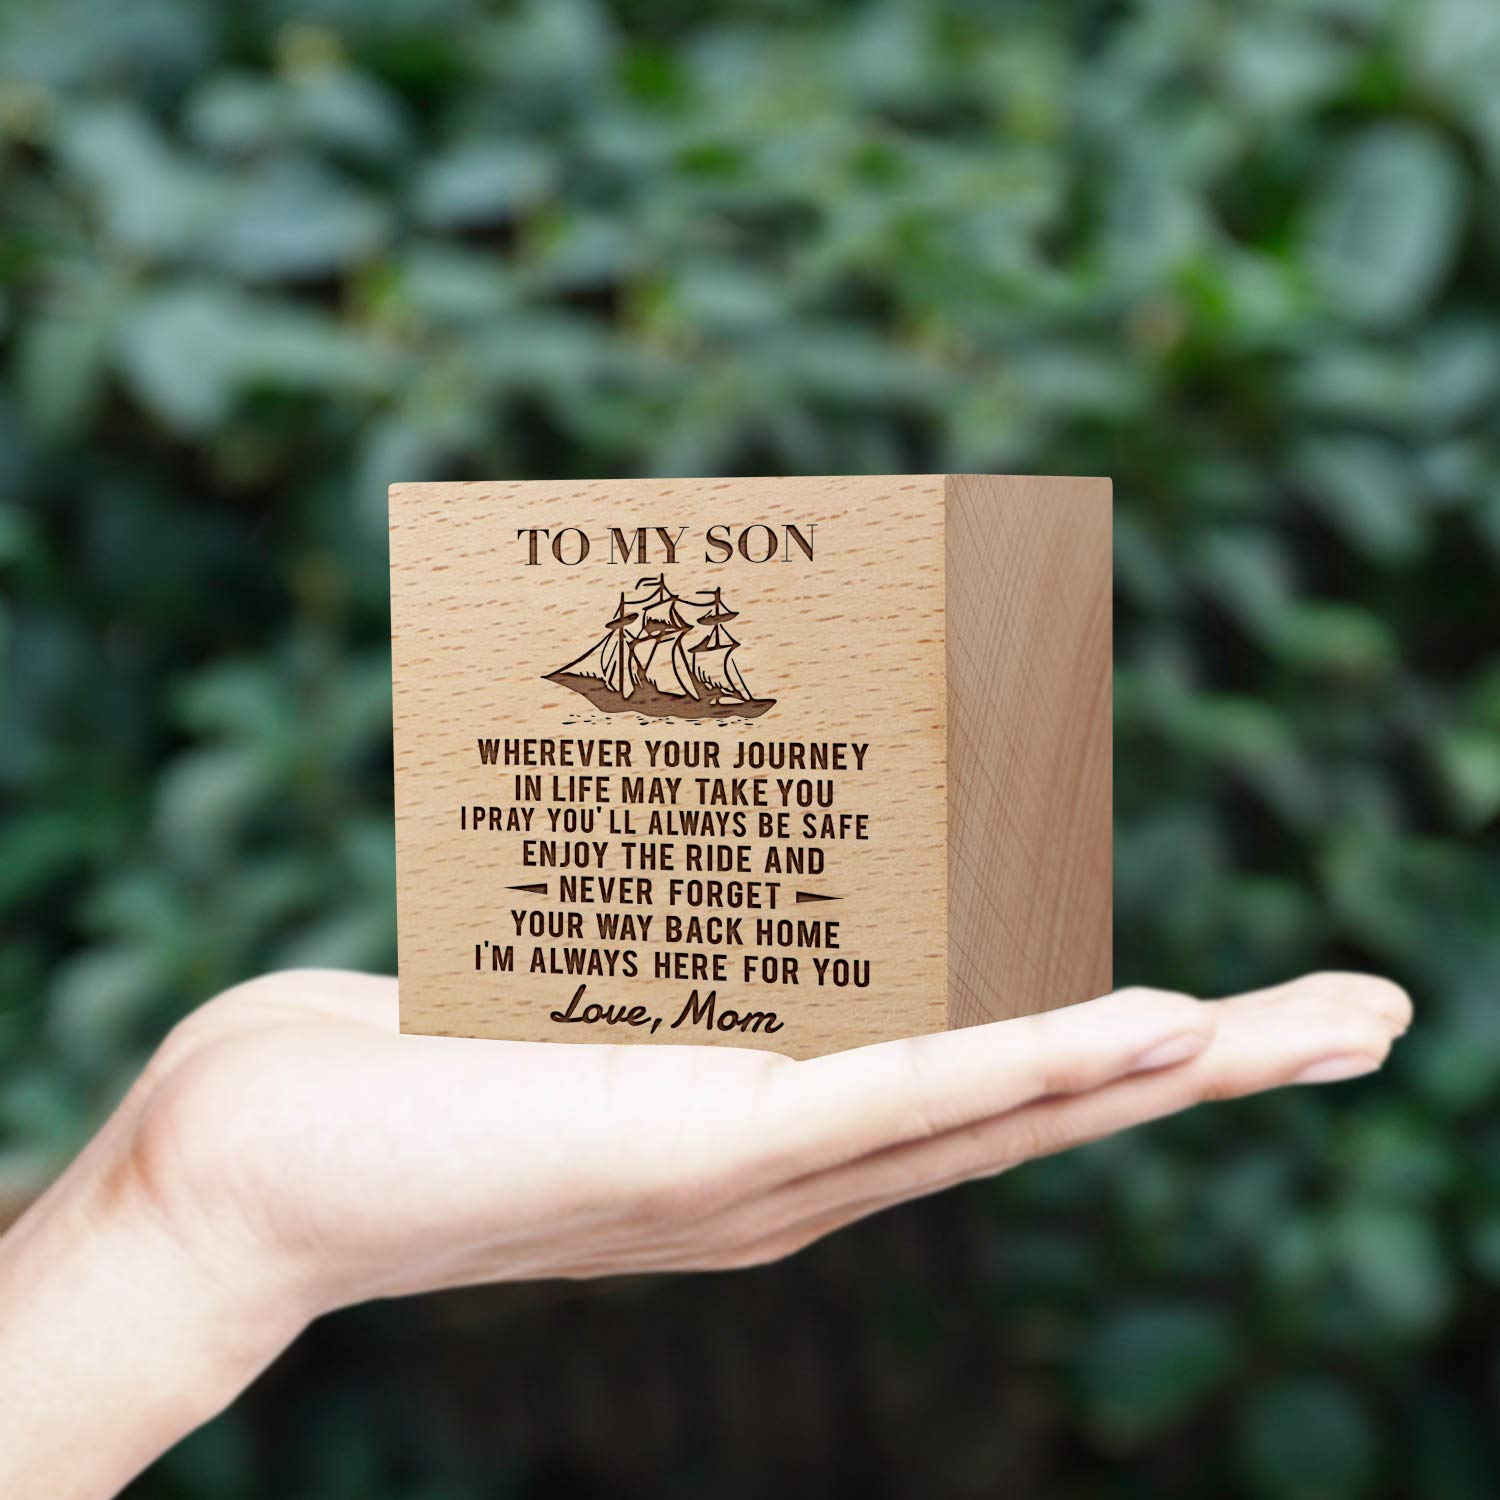 to Daughter from mom Engraved Potted Plant,Custom Square Mini Wooden Bonsai,Succulent Flower Pot to Family and Friend,Best Personality Gifts for Birthday Christmas Day